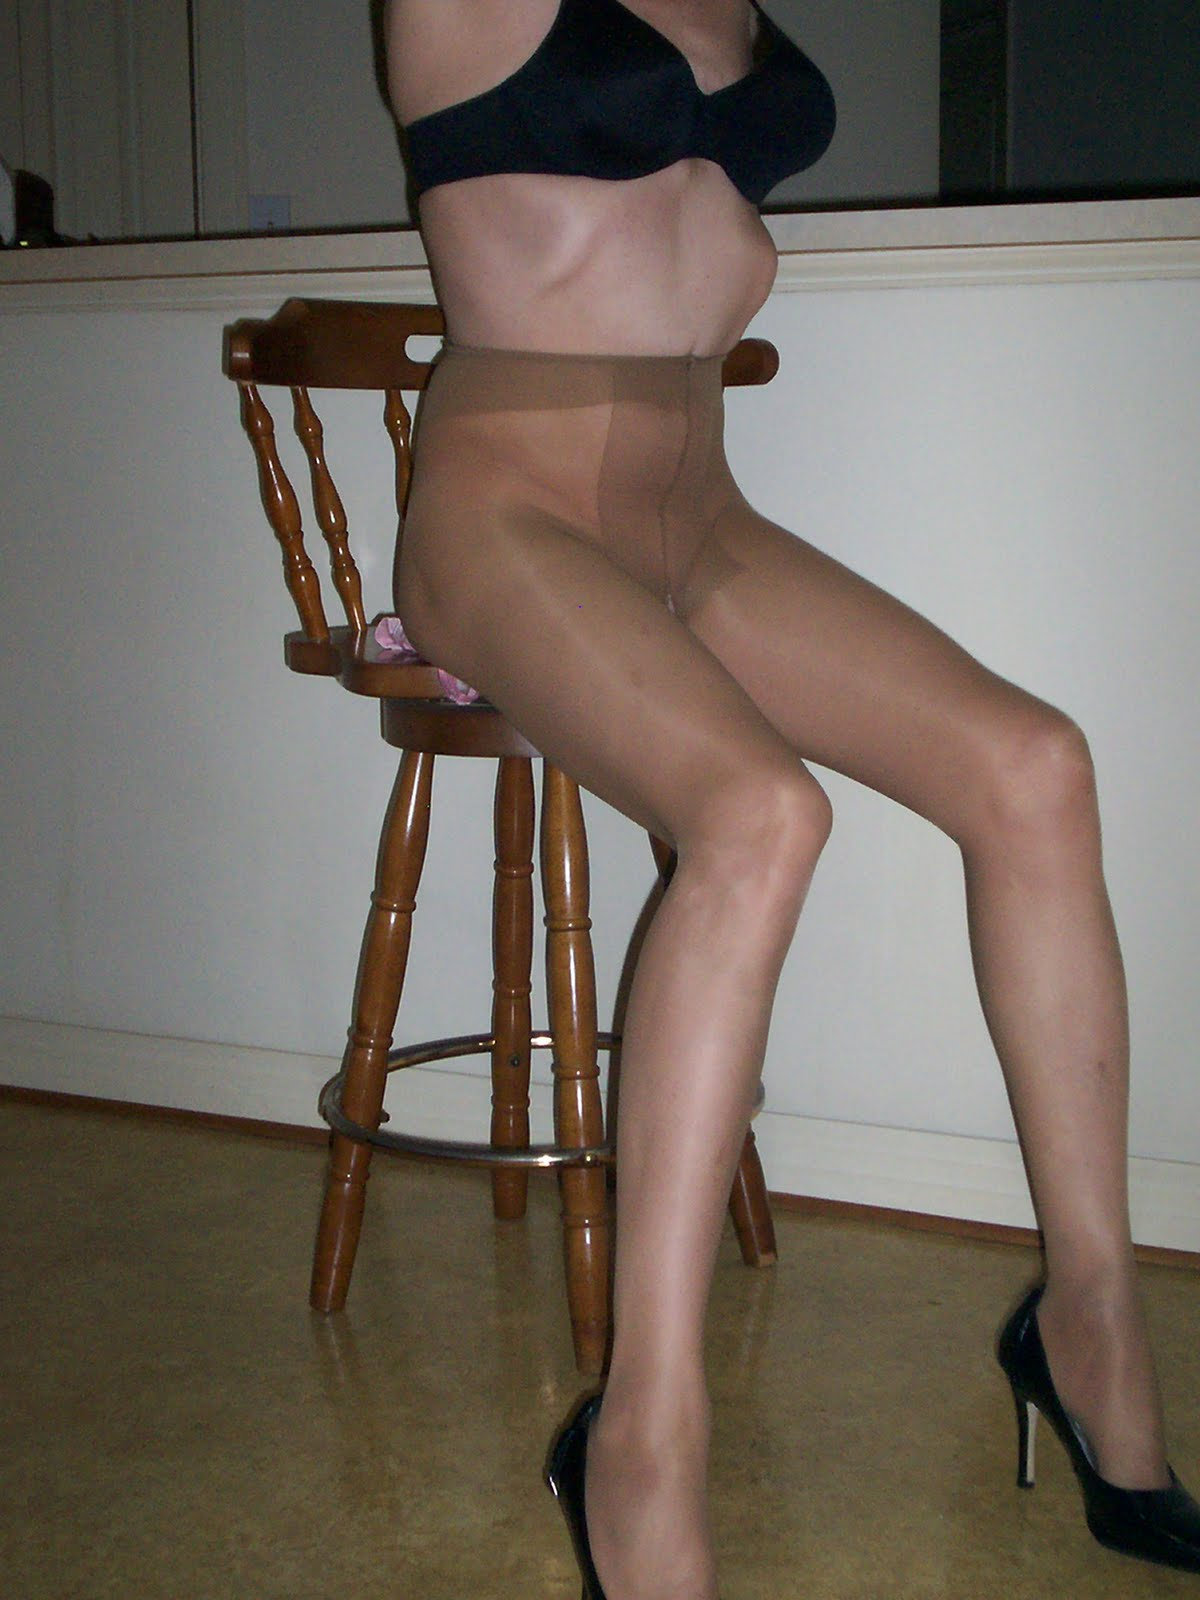 wearing stockings for sex